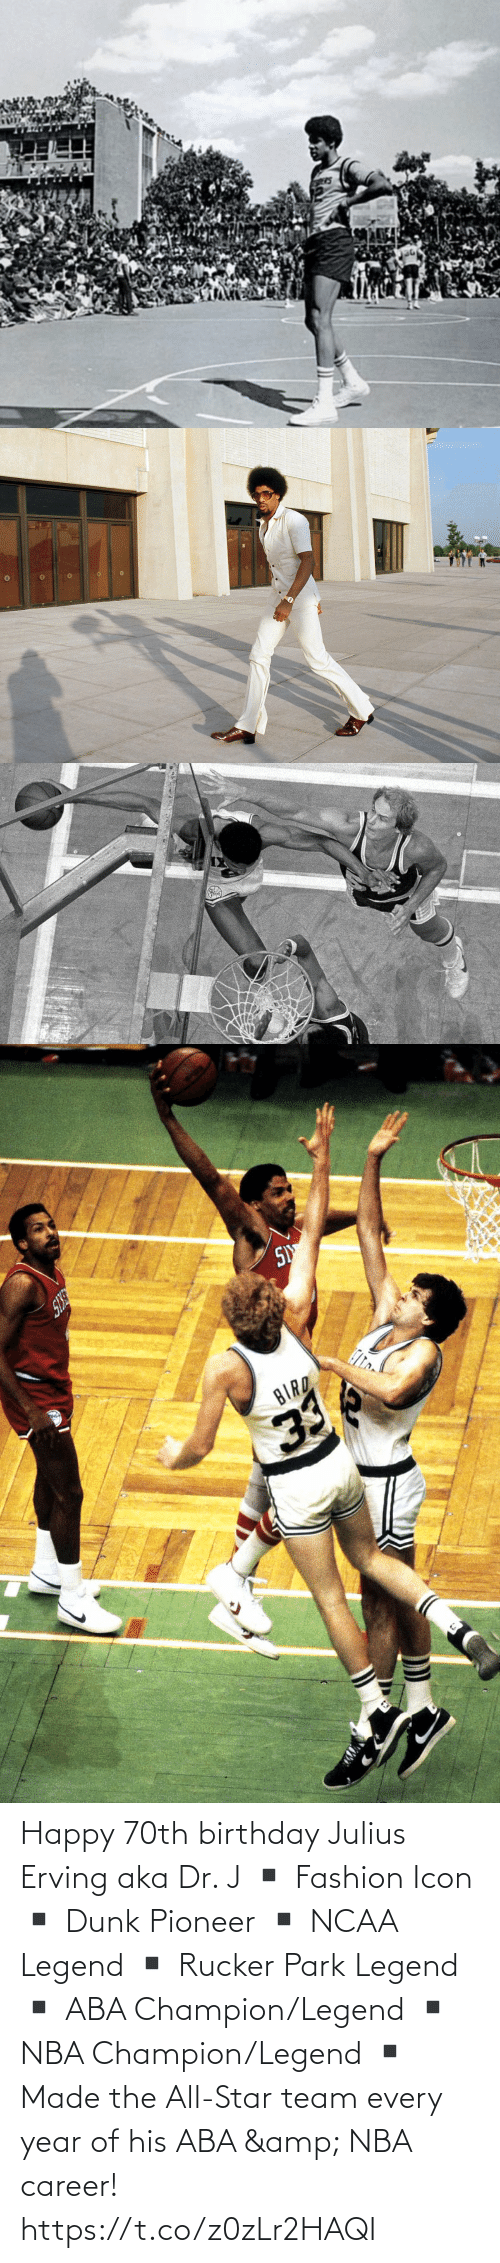 Dr: Happy 70th birthday Julius Erving aka Dr. J  ▪️ Fashion Icon ▪️ Dunk Pioneer ▪️ NCAA Legend ▪️ Rucker Park Legend ▪️ ABA Champion/Legend ▪️ NBA Champion/Legend ▪️ Made the All-Star team every year of his ABA & NBA career! https://t.co/z0zLr2HAQI